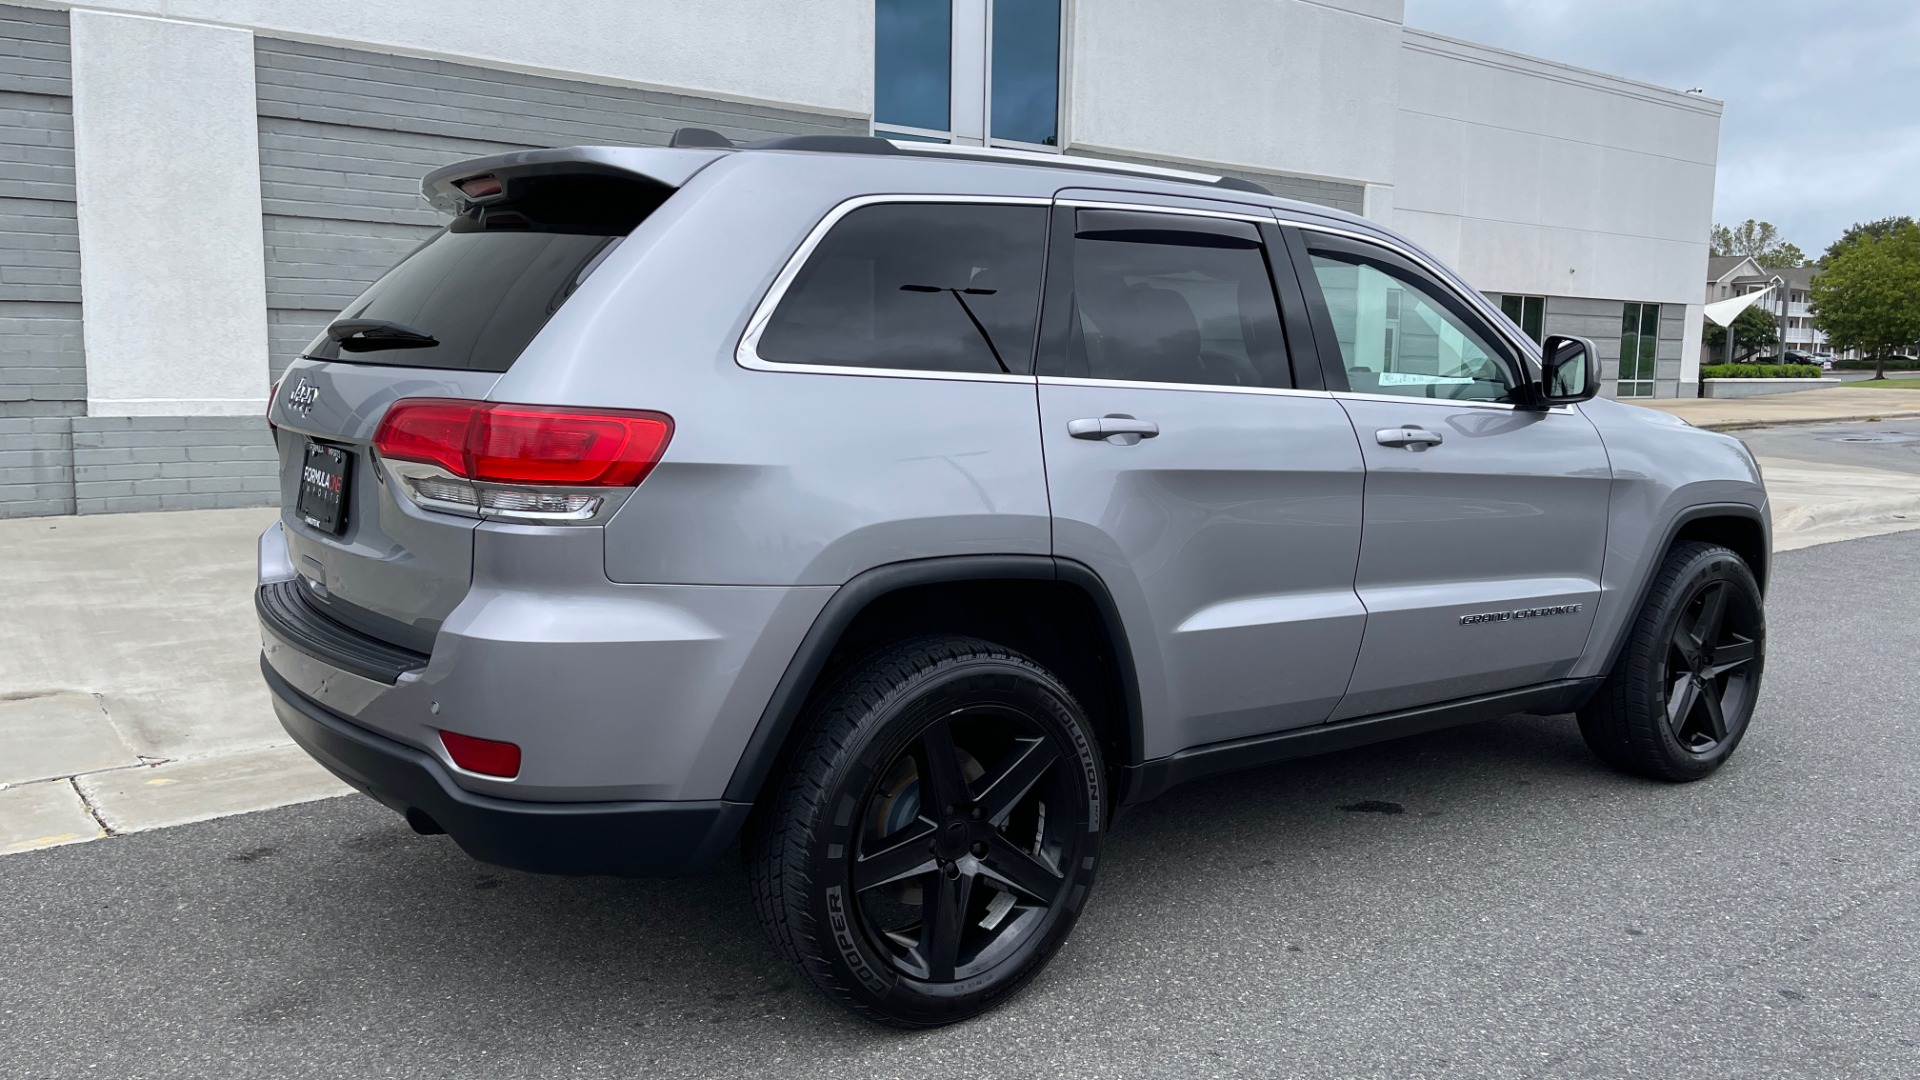 Used 2017 Jeep GRAND CHEROKEE LAREDO E 4X4 / KEYLESS-GO / 8.4IN TOUCH SCREEN / REARVIEW for sale $27,595 at Formula Imports in Charlotte NC 28227 2